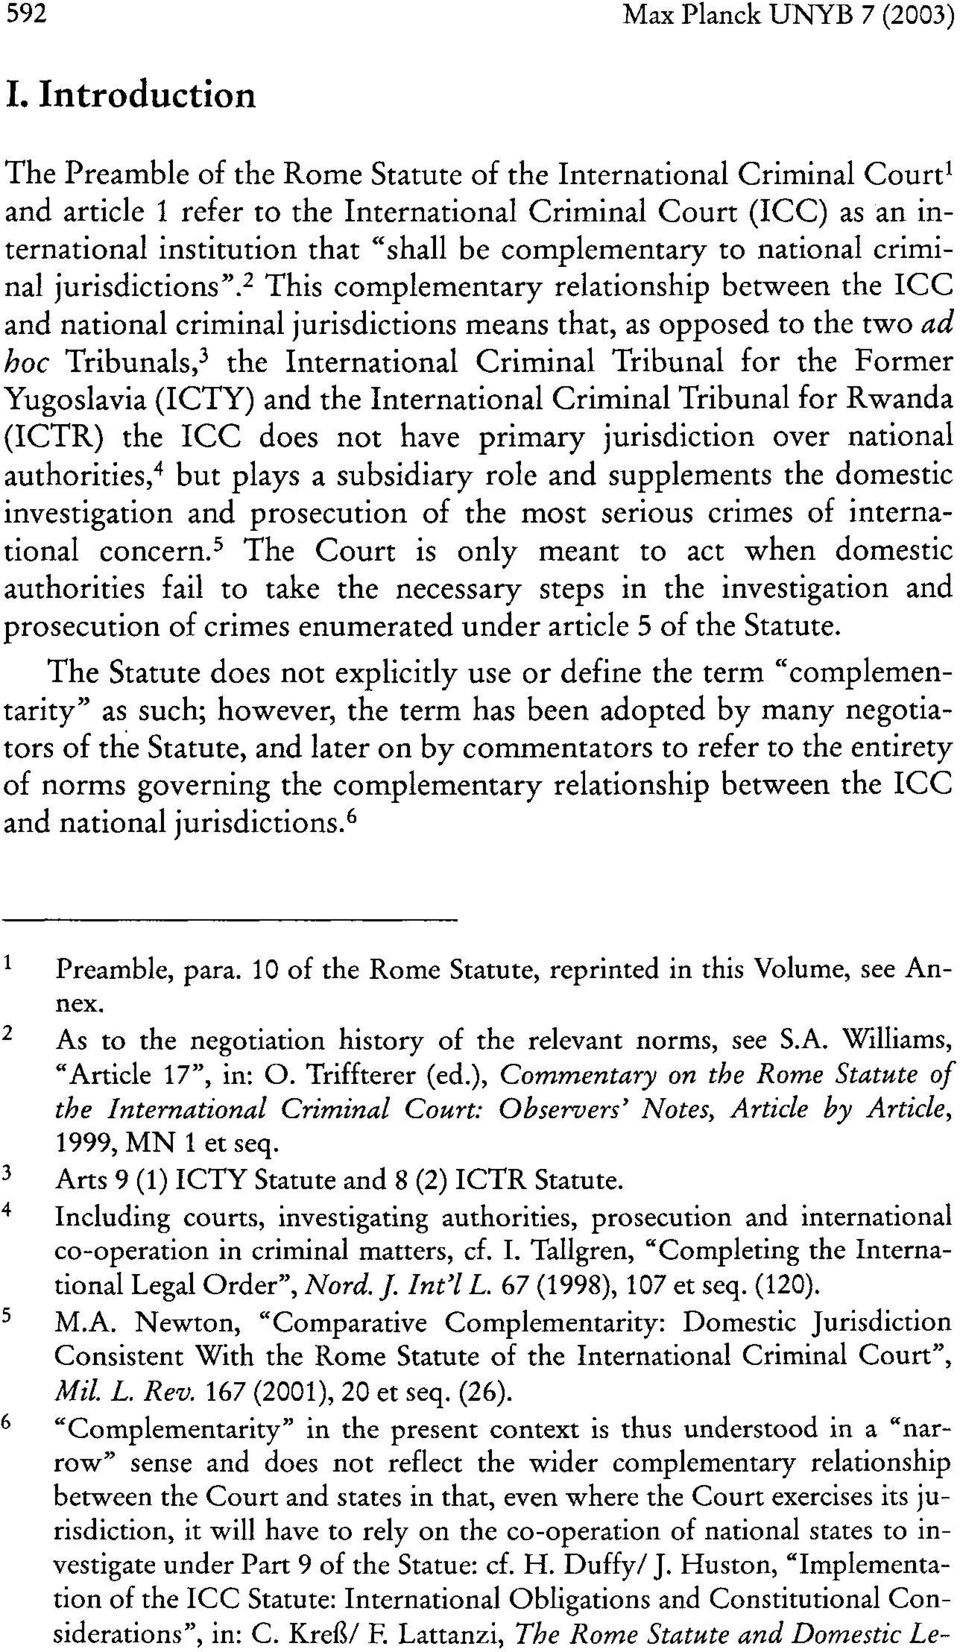 complementary to national criminal jurisdictions'v This complementary relationship between the ICC and national criminal jurisdictions means that, as opposed to the two ad hoc Tribunals.